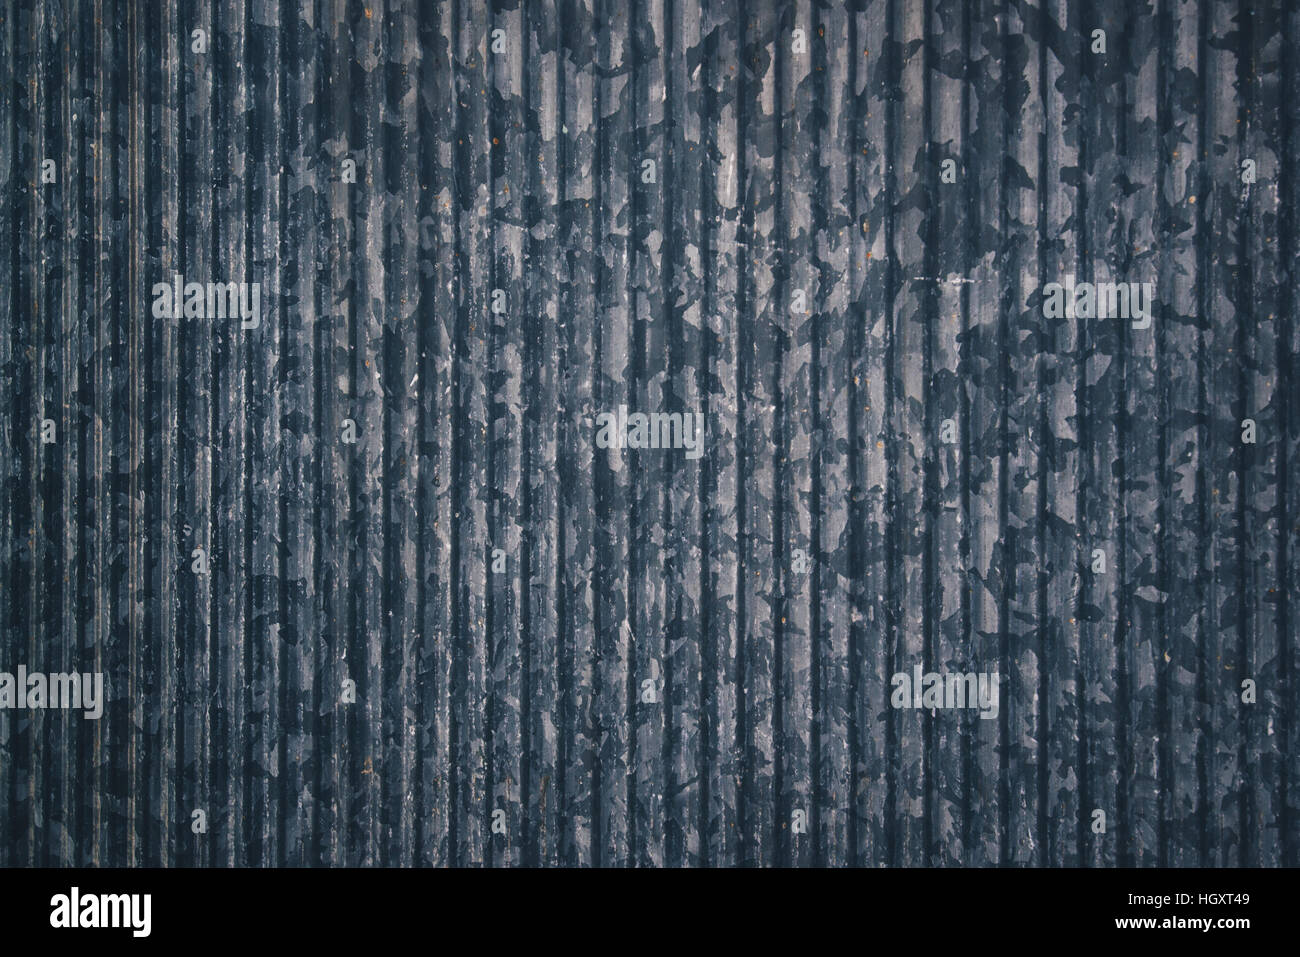 Zinc galvanized metal plate texture as industrial background - Stock Image